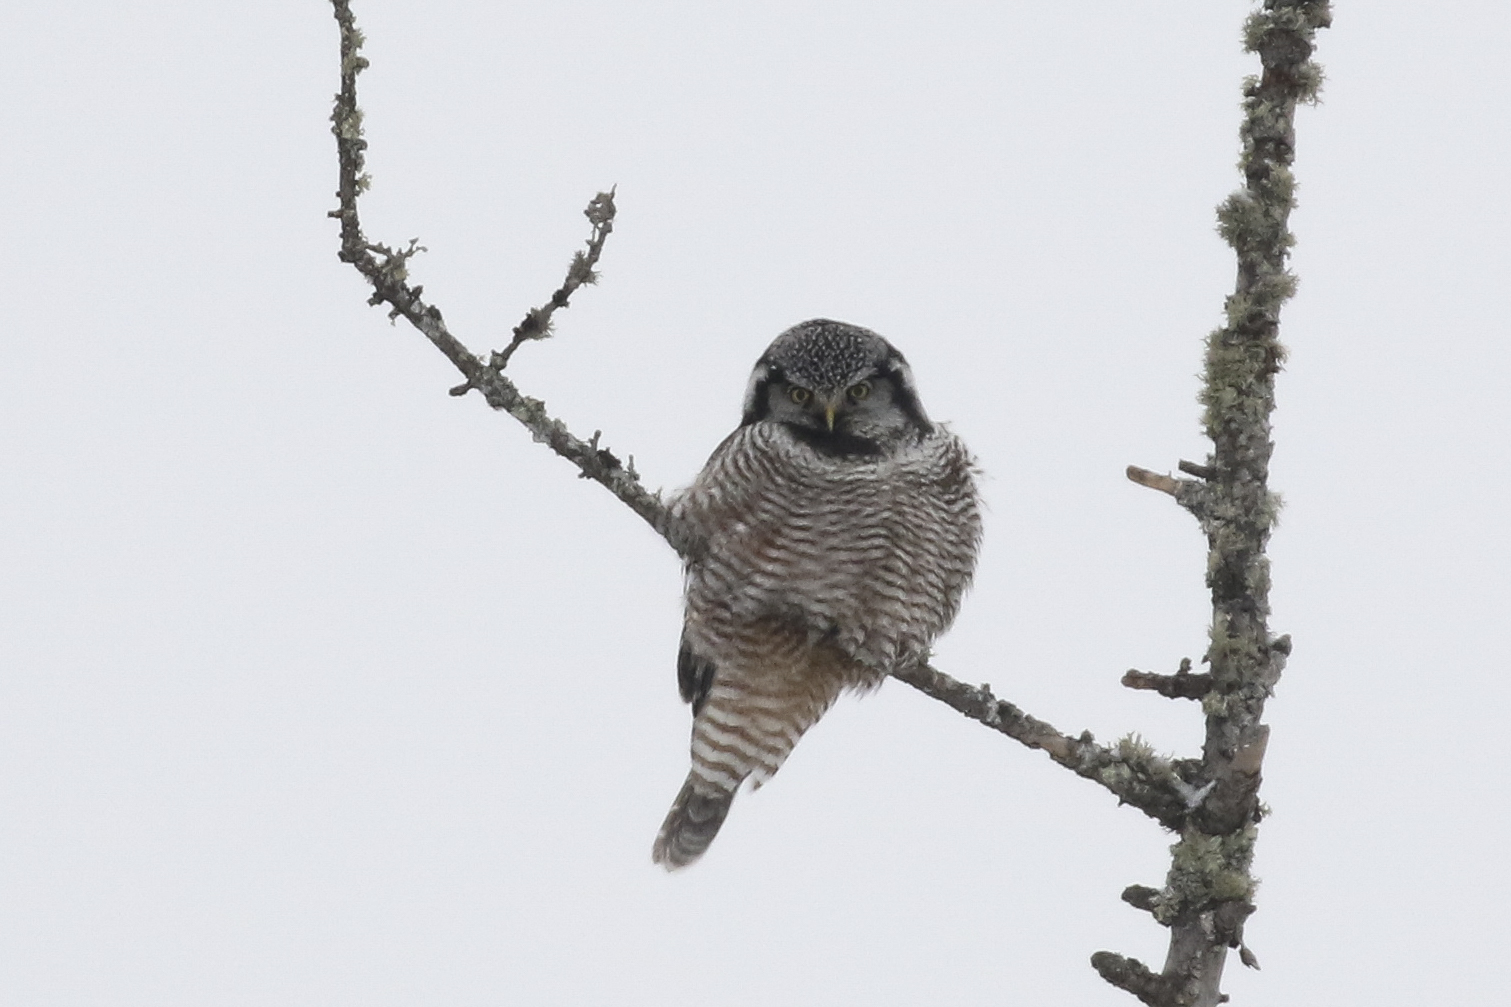 Northern Hawk Owl - Sax-Zim Bog, MN. February 2019